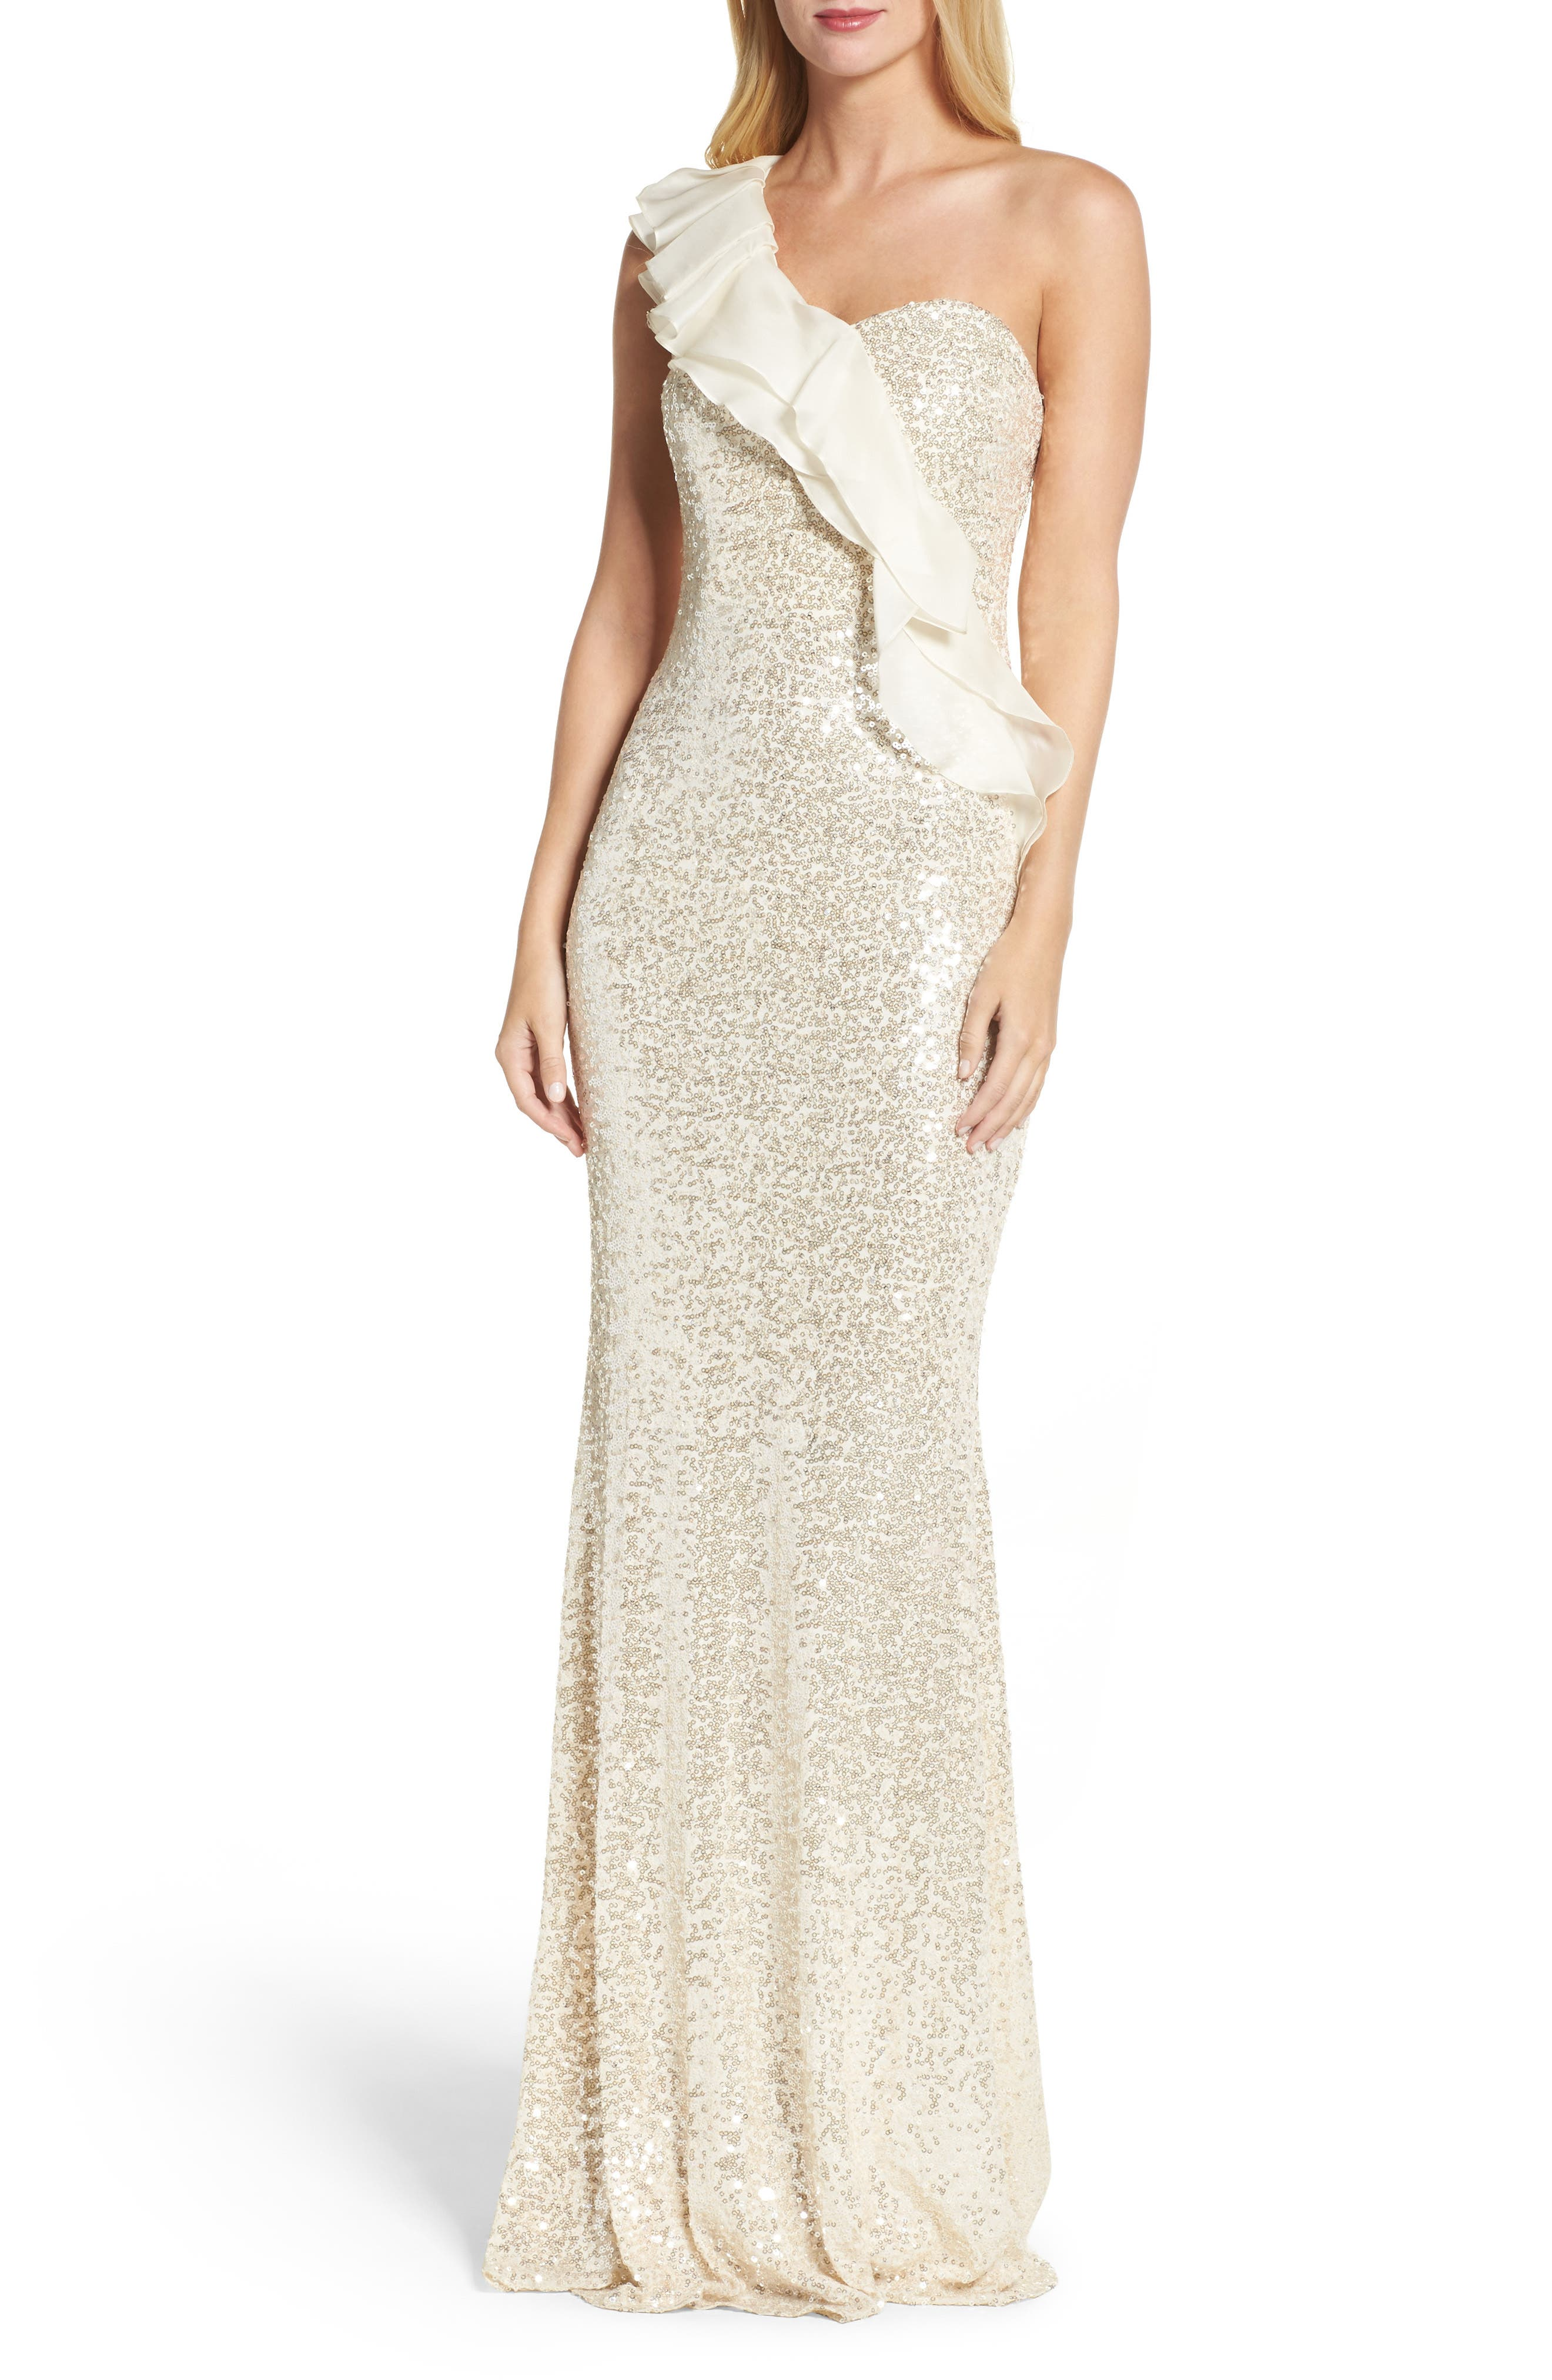 Ruffle Sequin One-Shoulder Gown,                             Main thumbnail 1, color,                             251